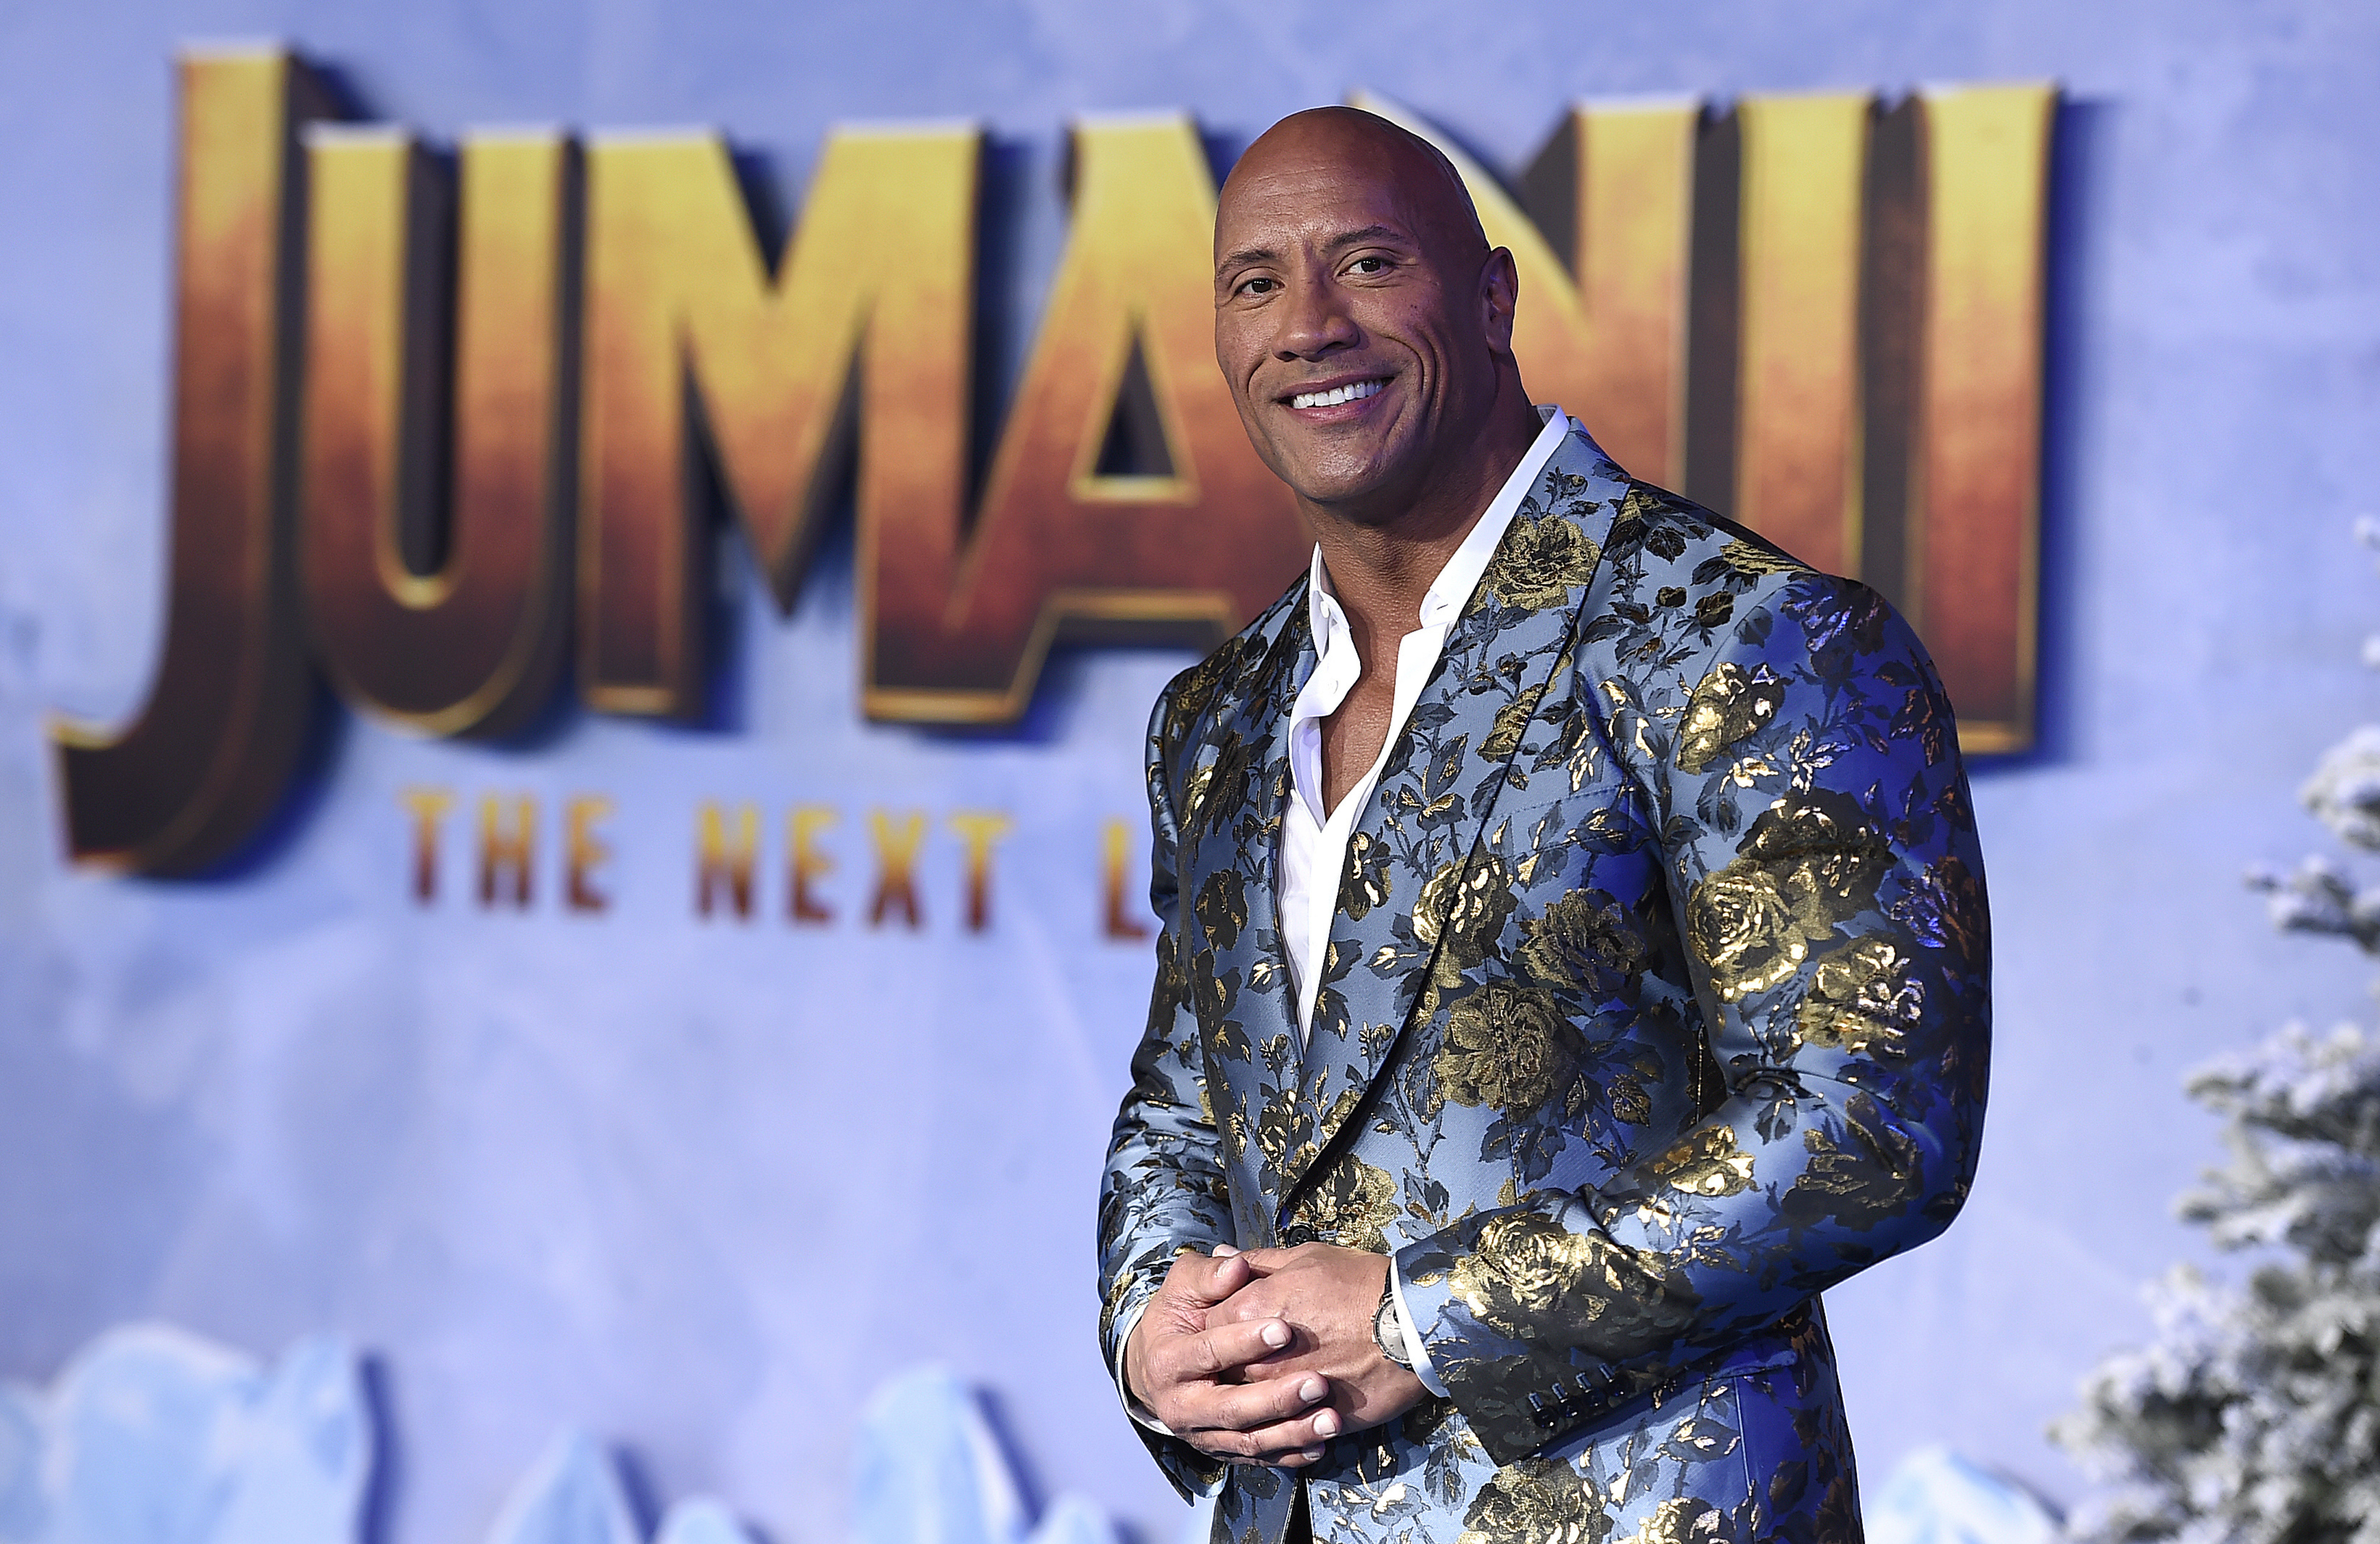 """Cast member Dwayne Johnson poses for photographers at the Los Angeles premiere of """"Jumanji: The Next Level"""" at the TCL Chinese Theatre on Monday, Dec. 9, 2019. (Photo by Jordan Strauss/Invision/AP)"""